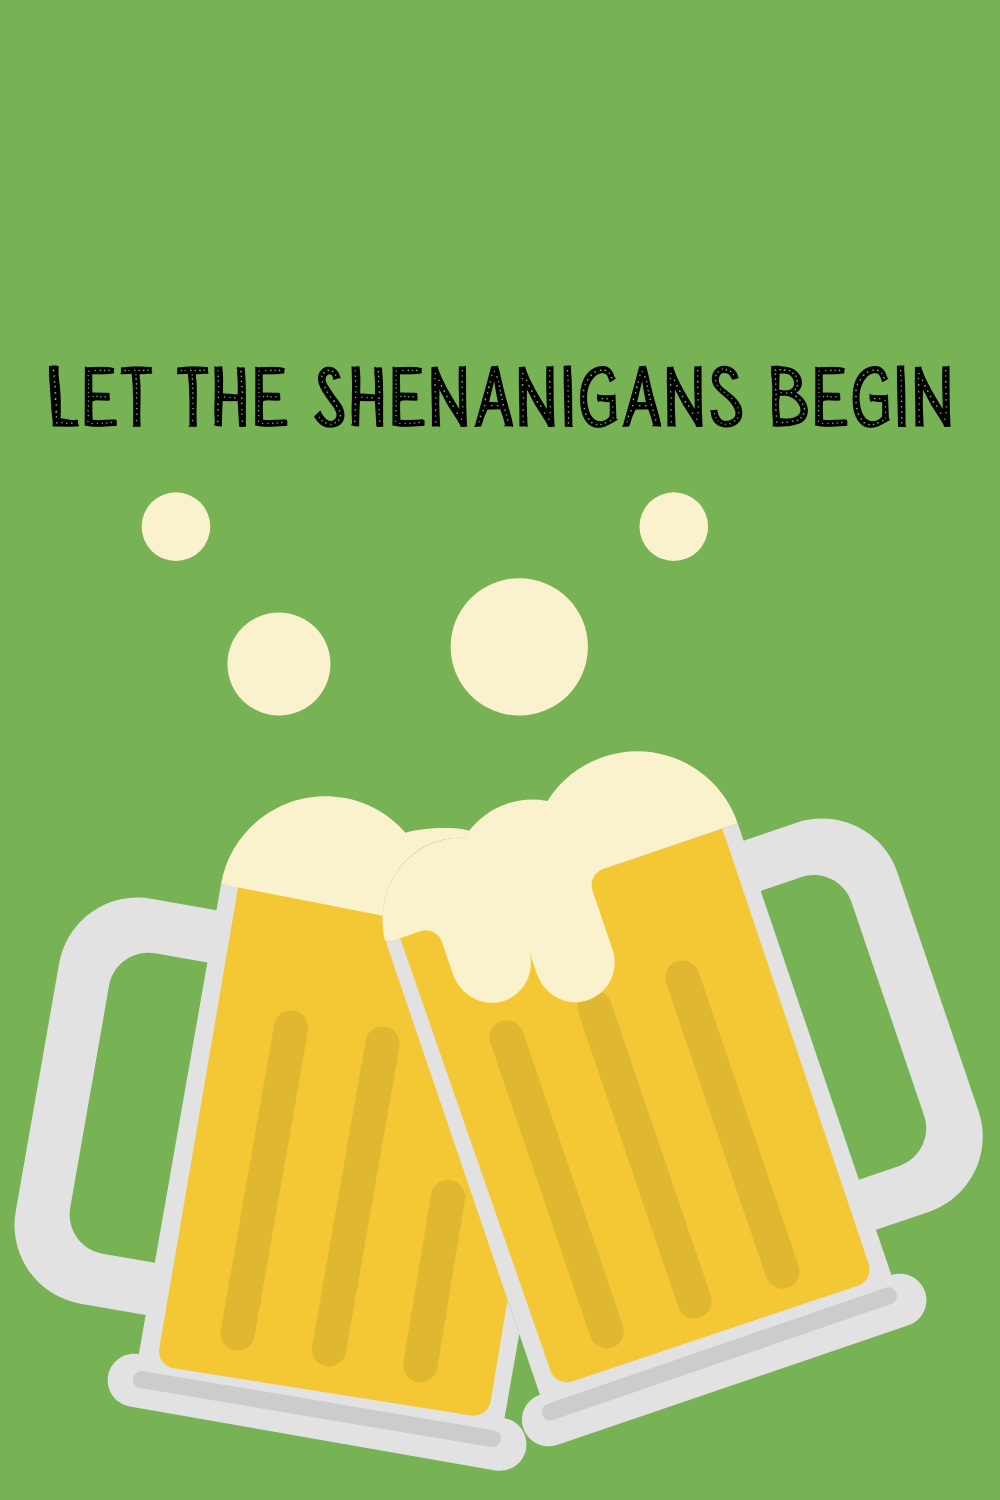 Drinking Quotes For St. Patricks Day